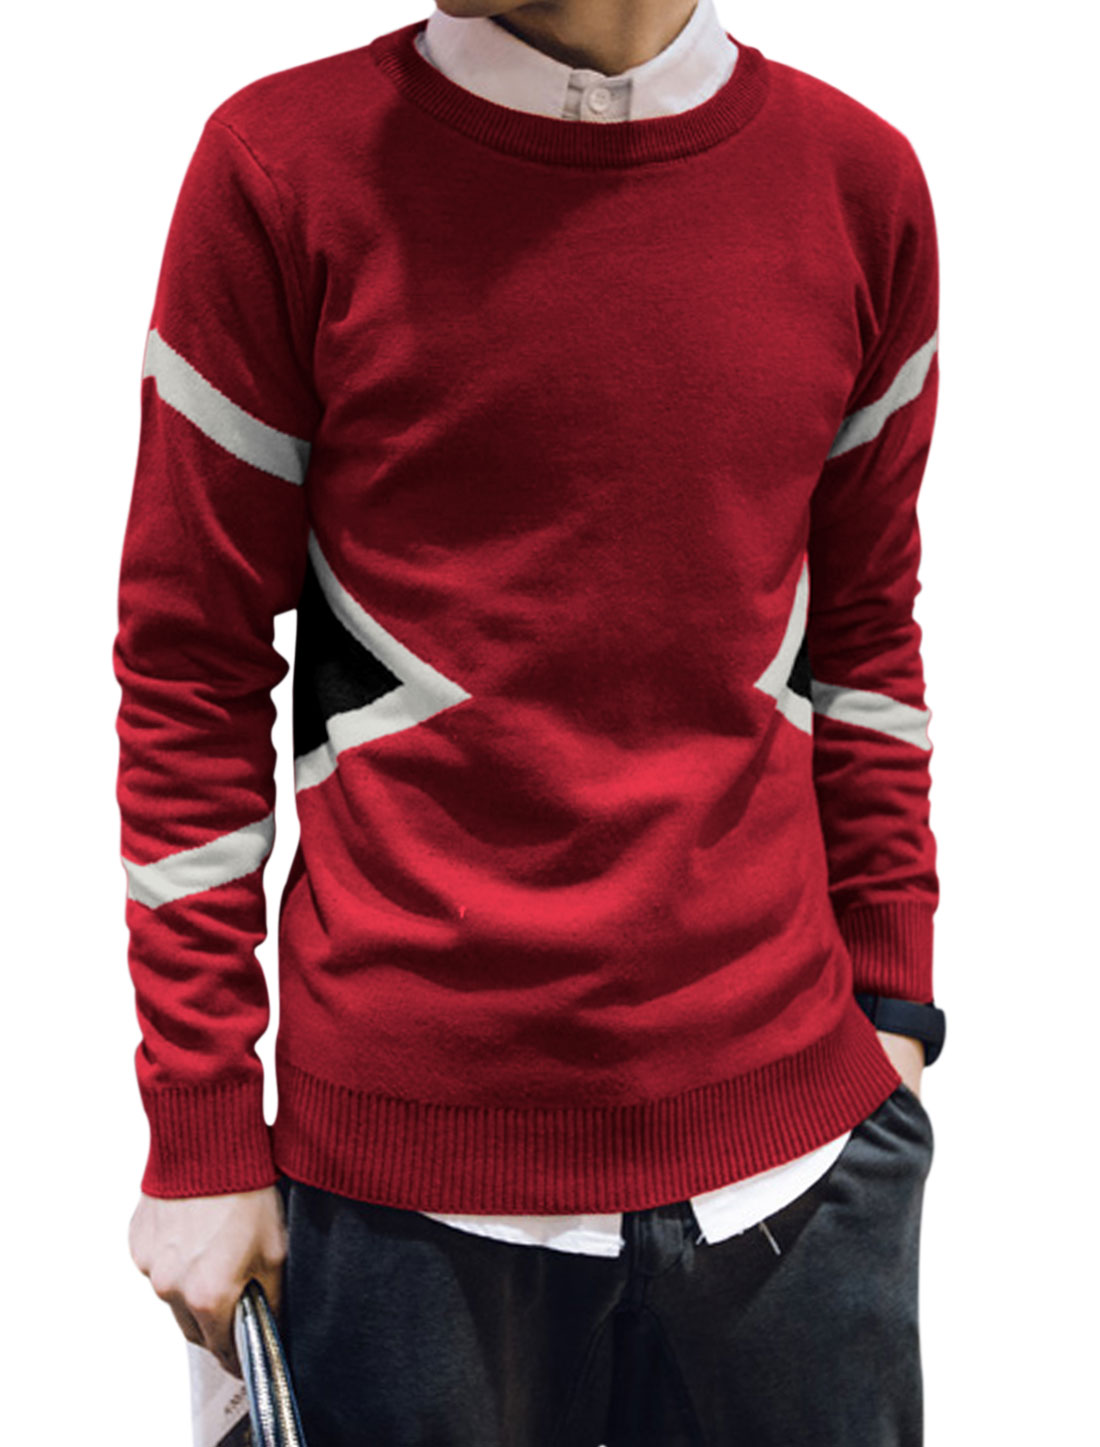 Men Long Sleeve Round Neck Pullovers Knit Shirts Red M